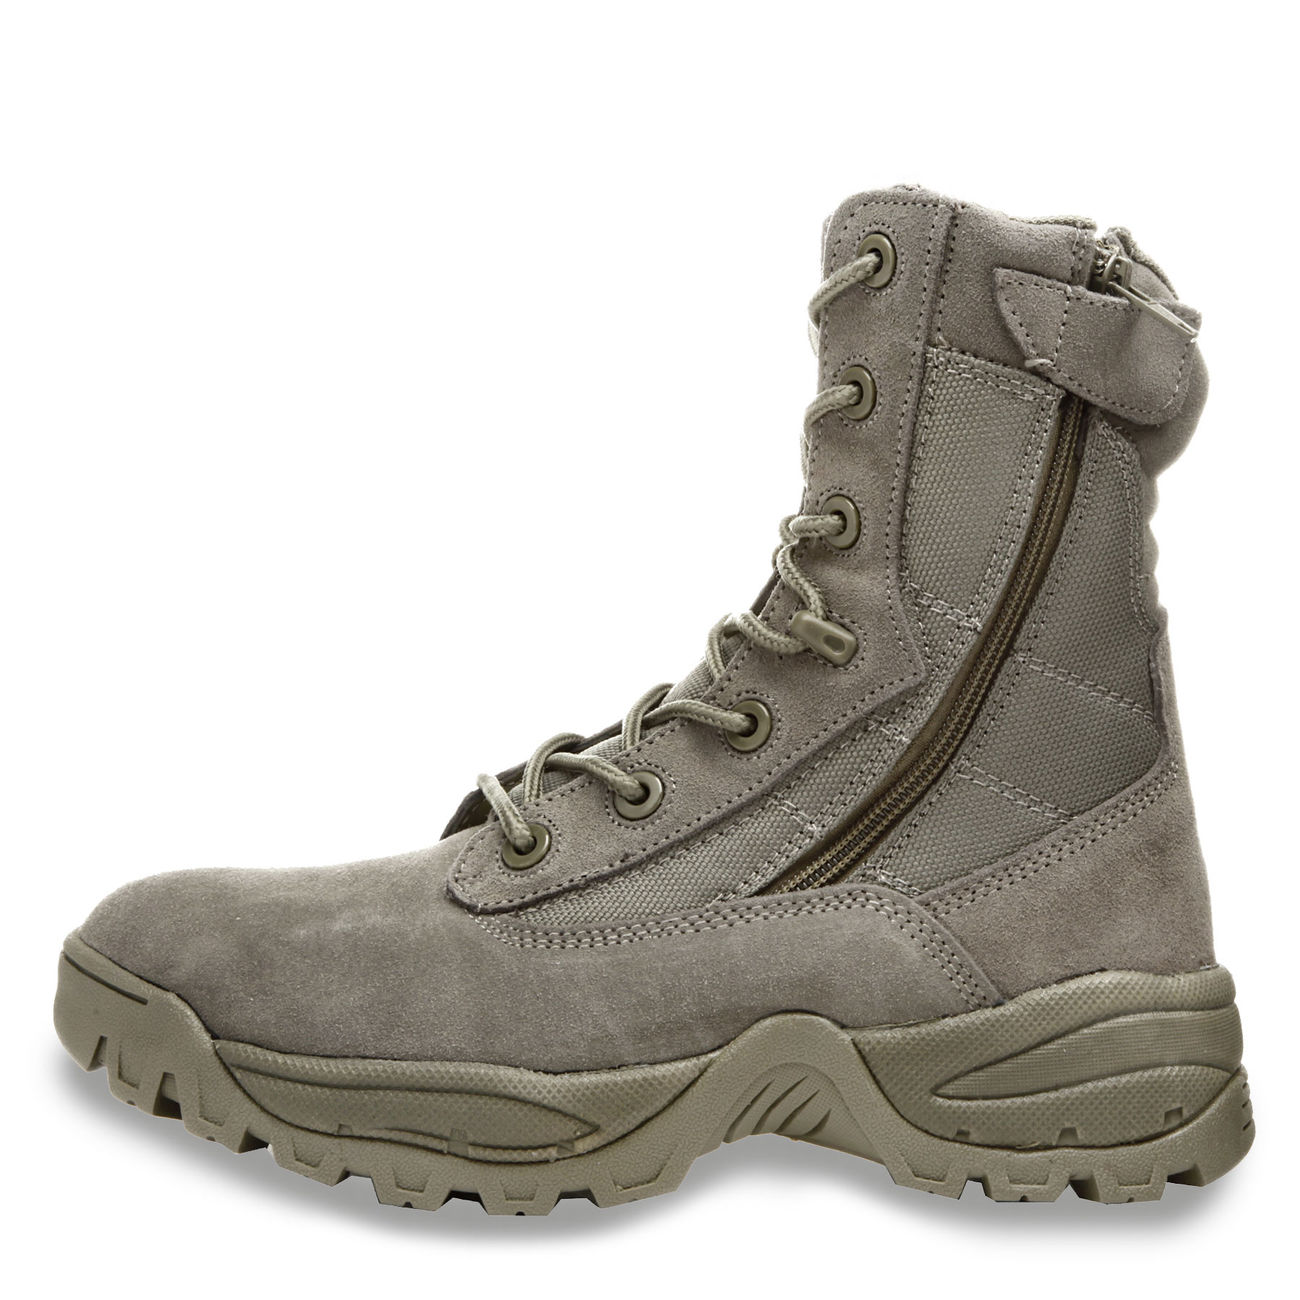 Mil-Tec Tactical Boot Two-Zip foliage 0